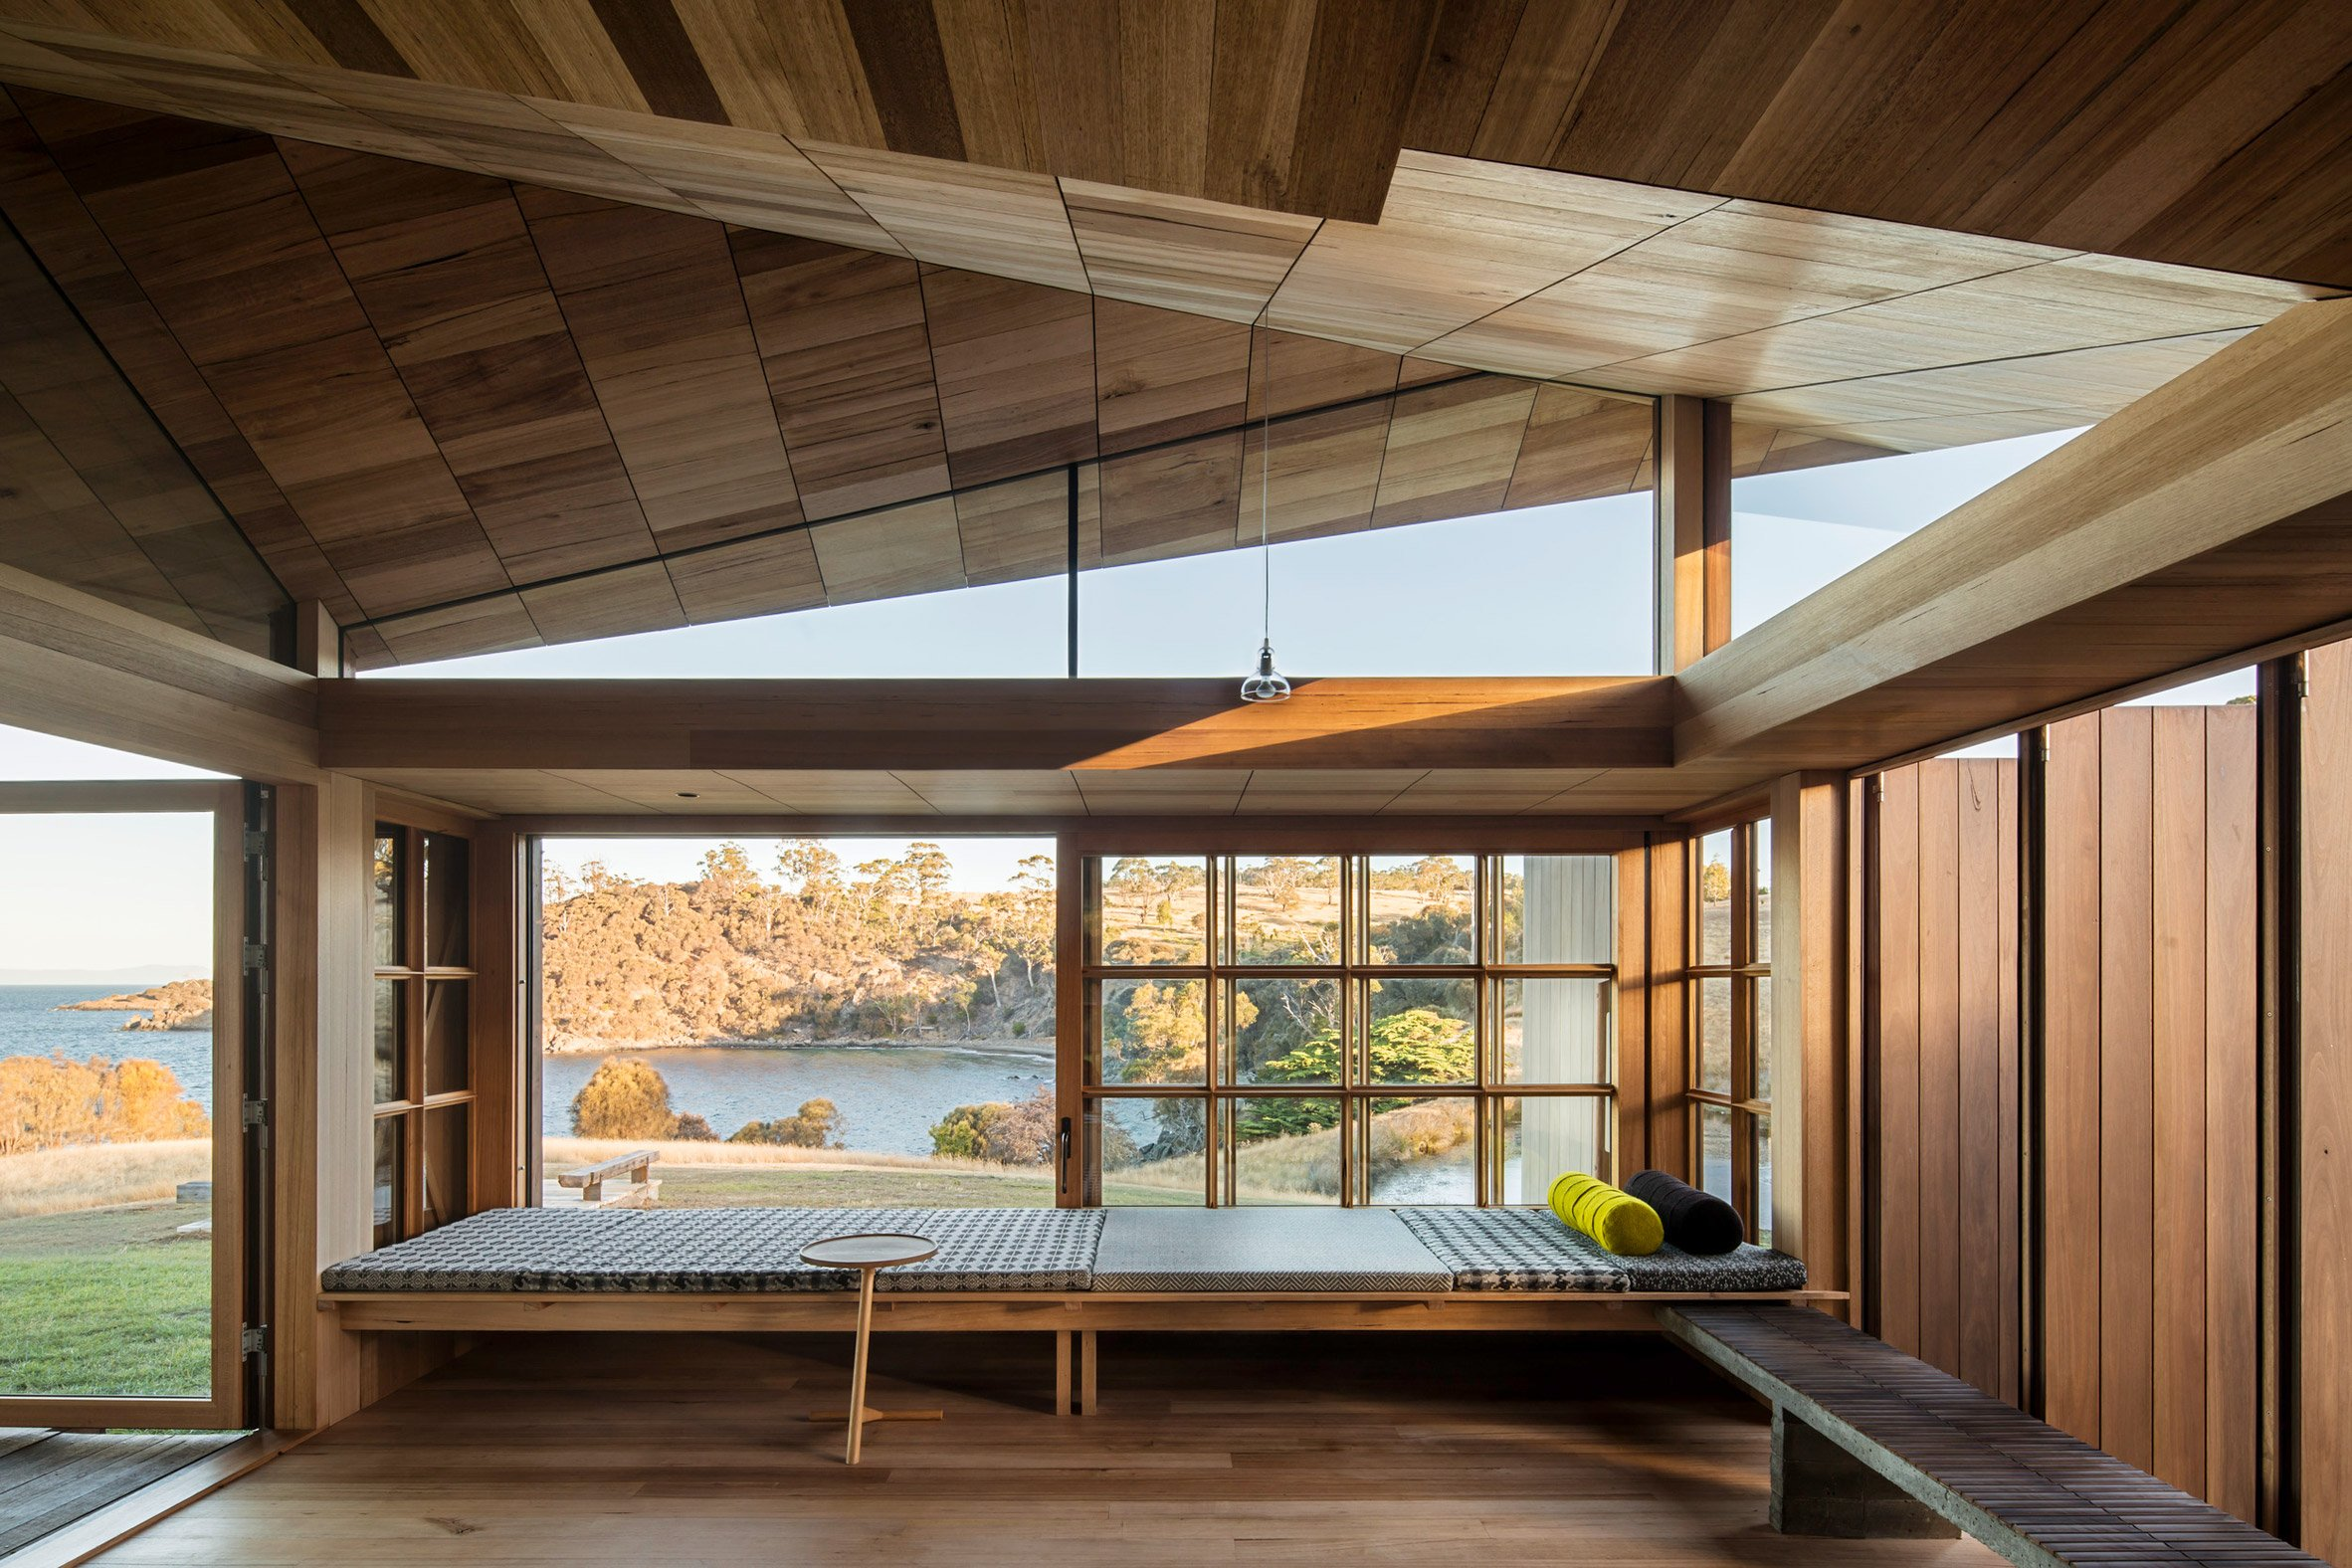 John Wardle Architects restores and extends Captain Kelly's forgotten Tasmanian cottage